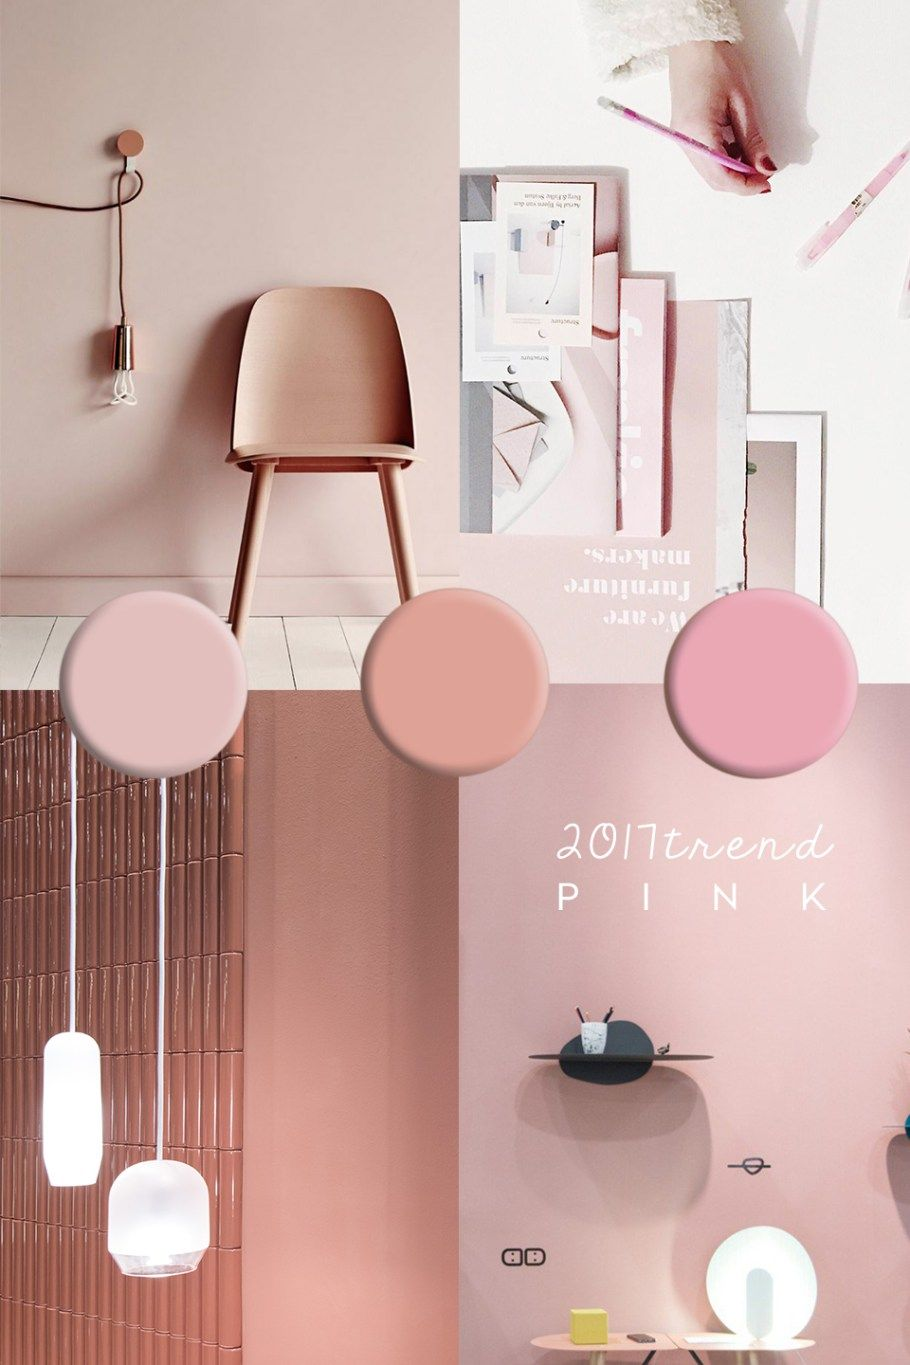 INTERIOR TRENDS | Colors | Pinterest | Interiors and Room